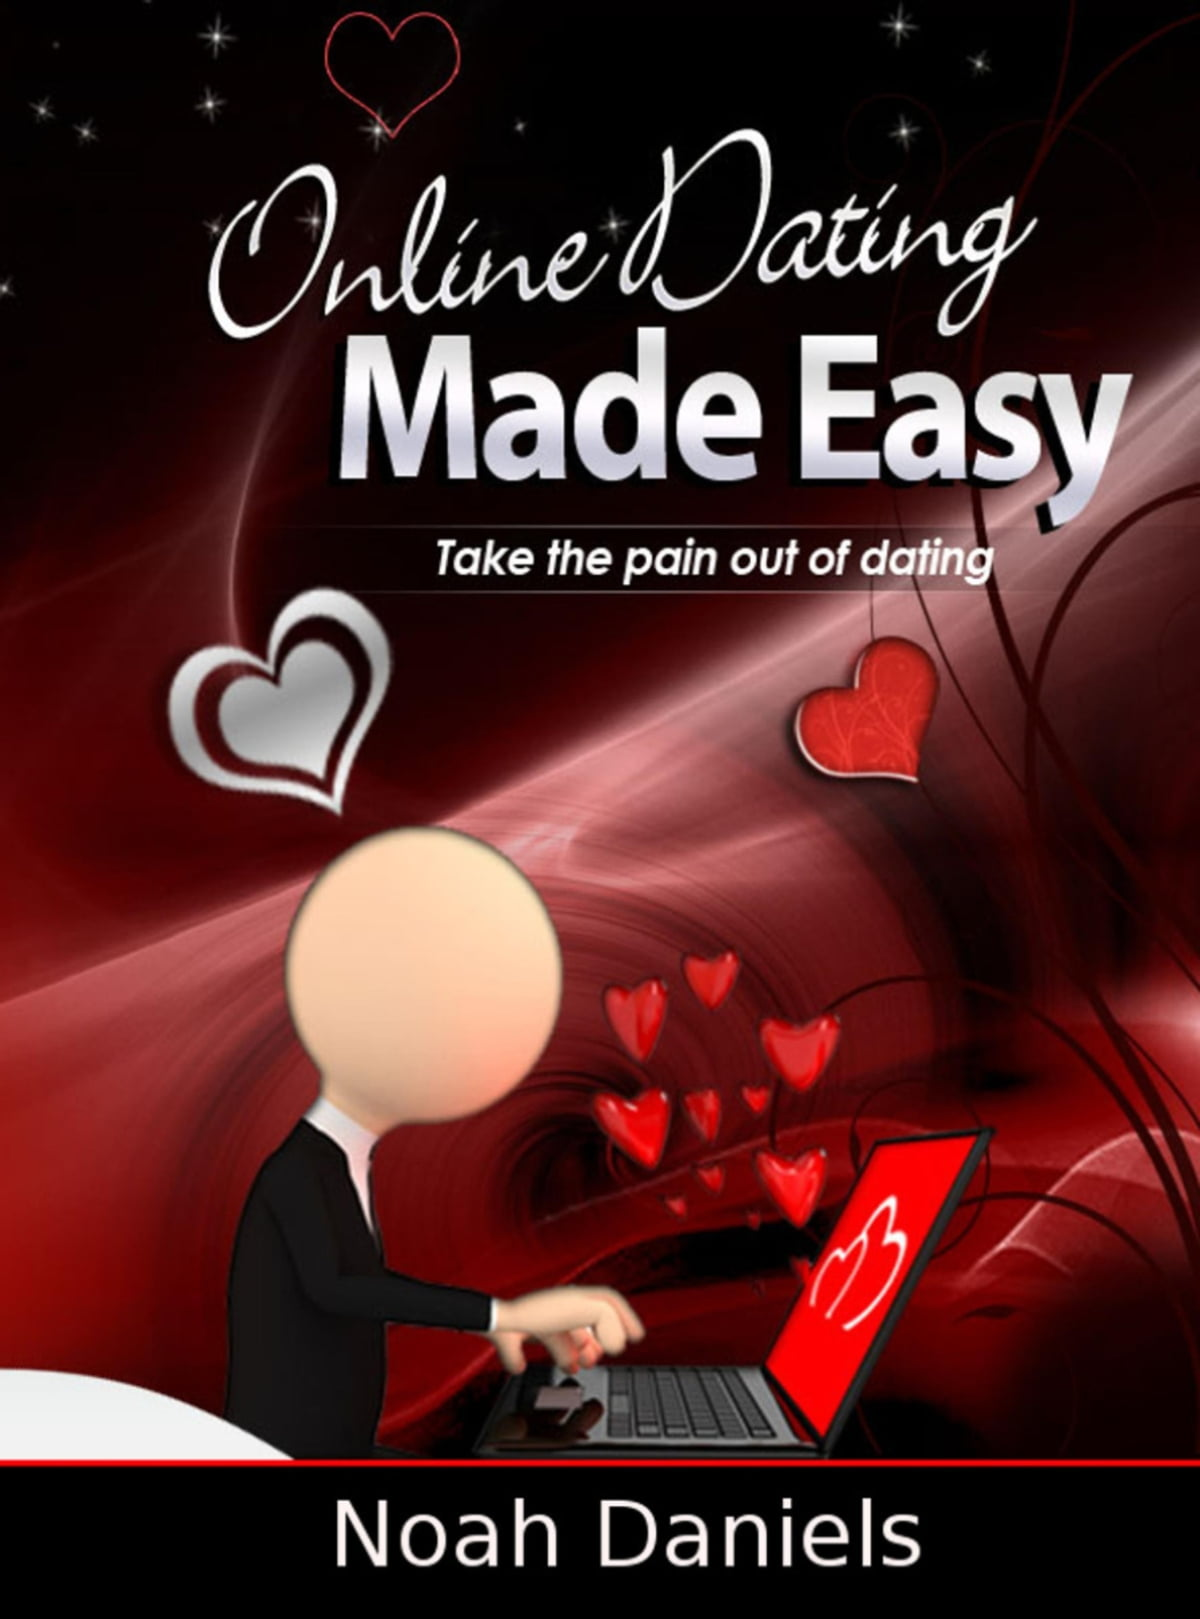 Online dating the easy way PDF eBook